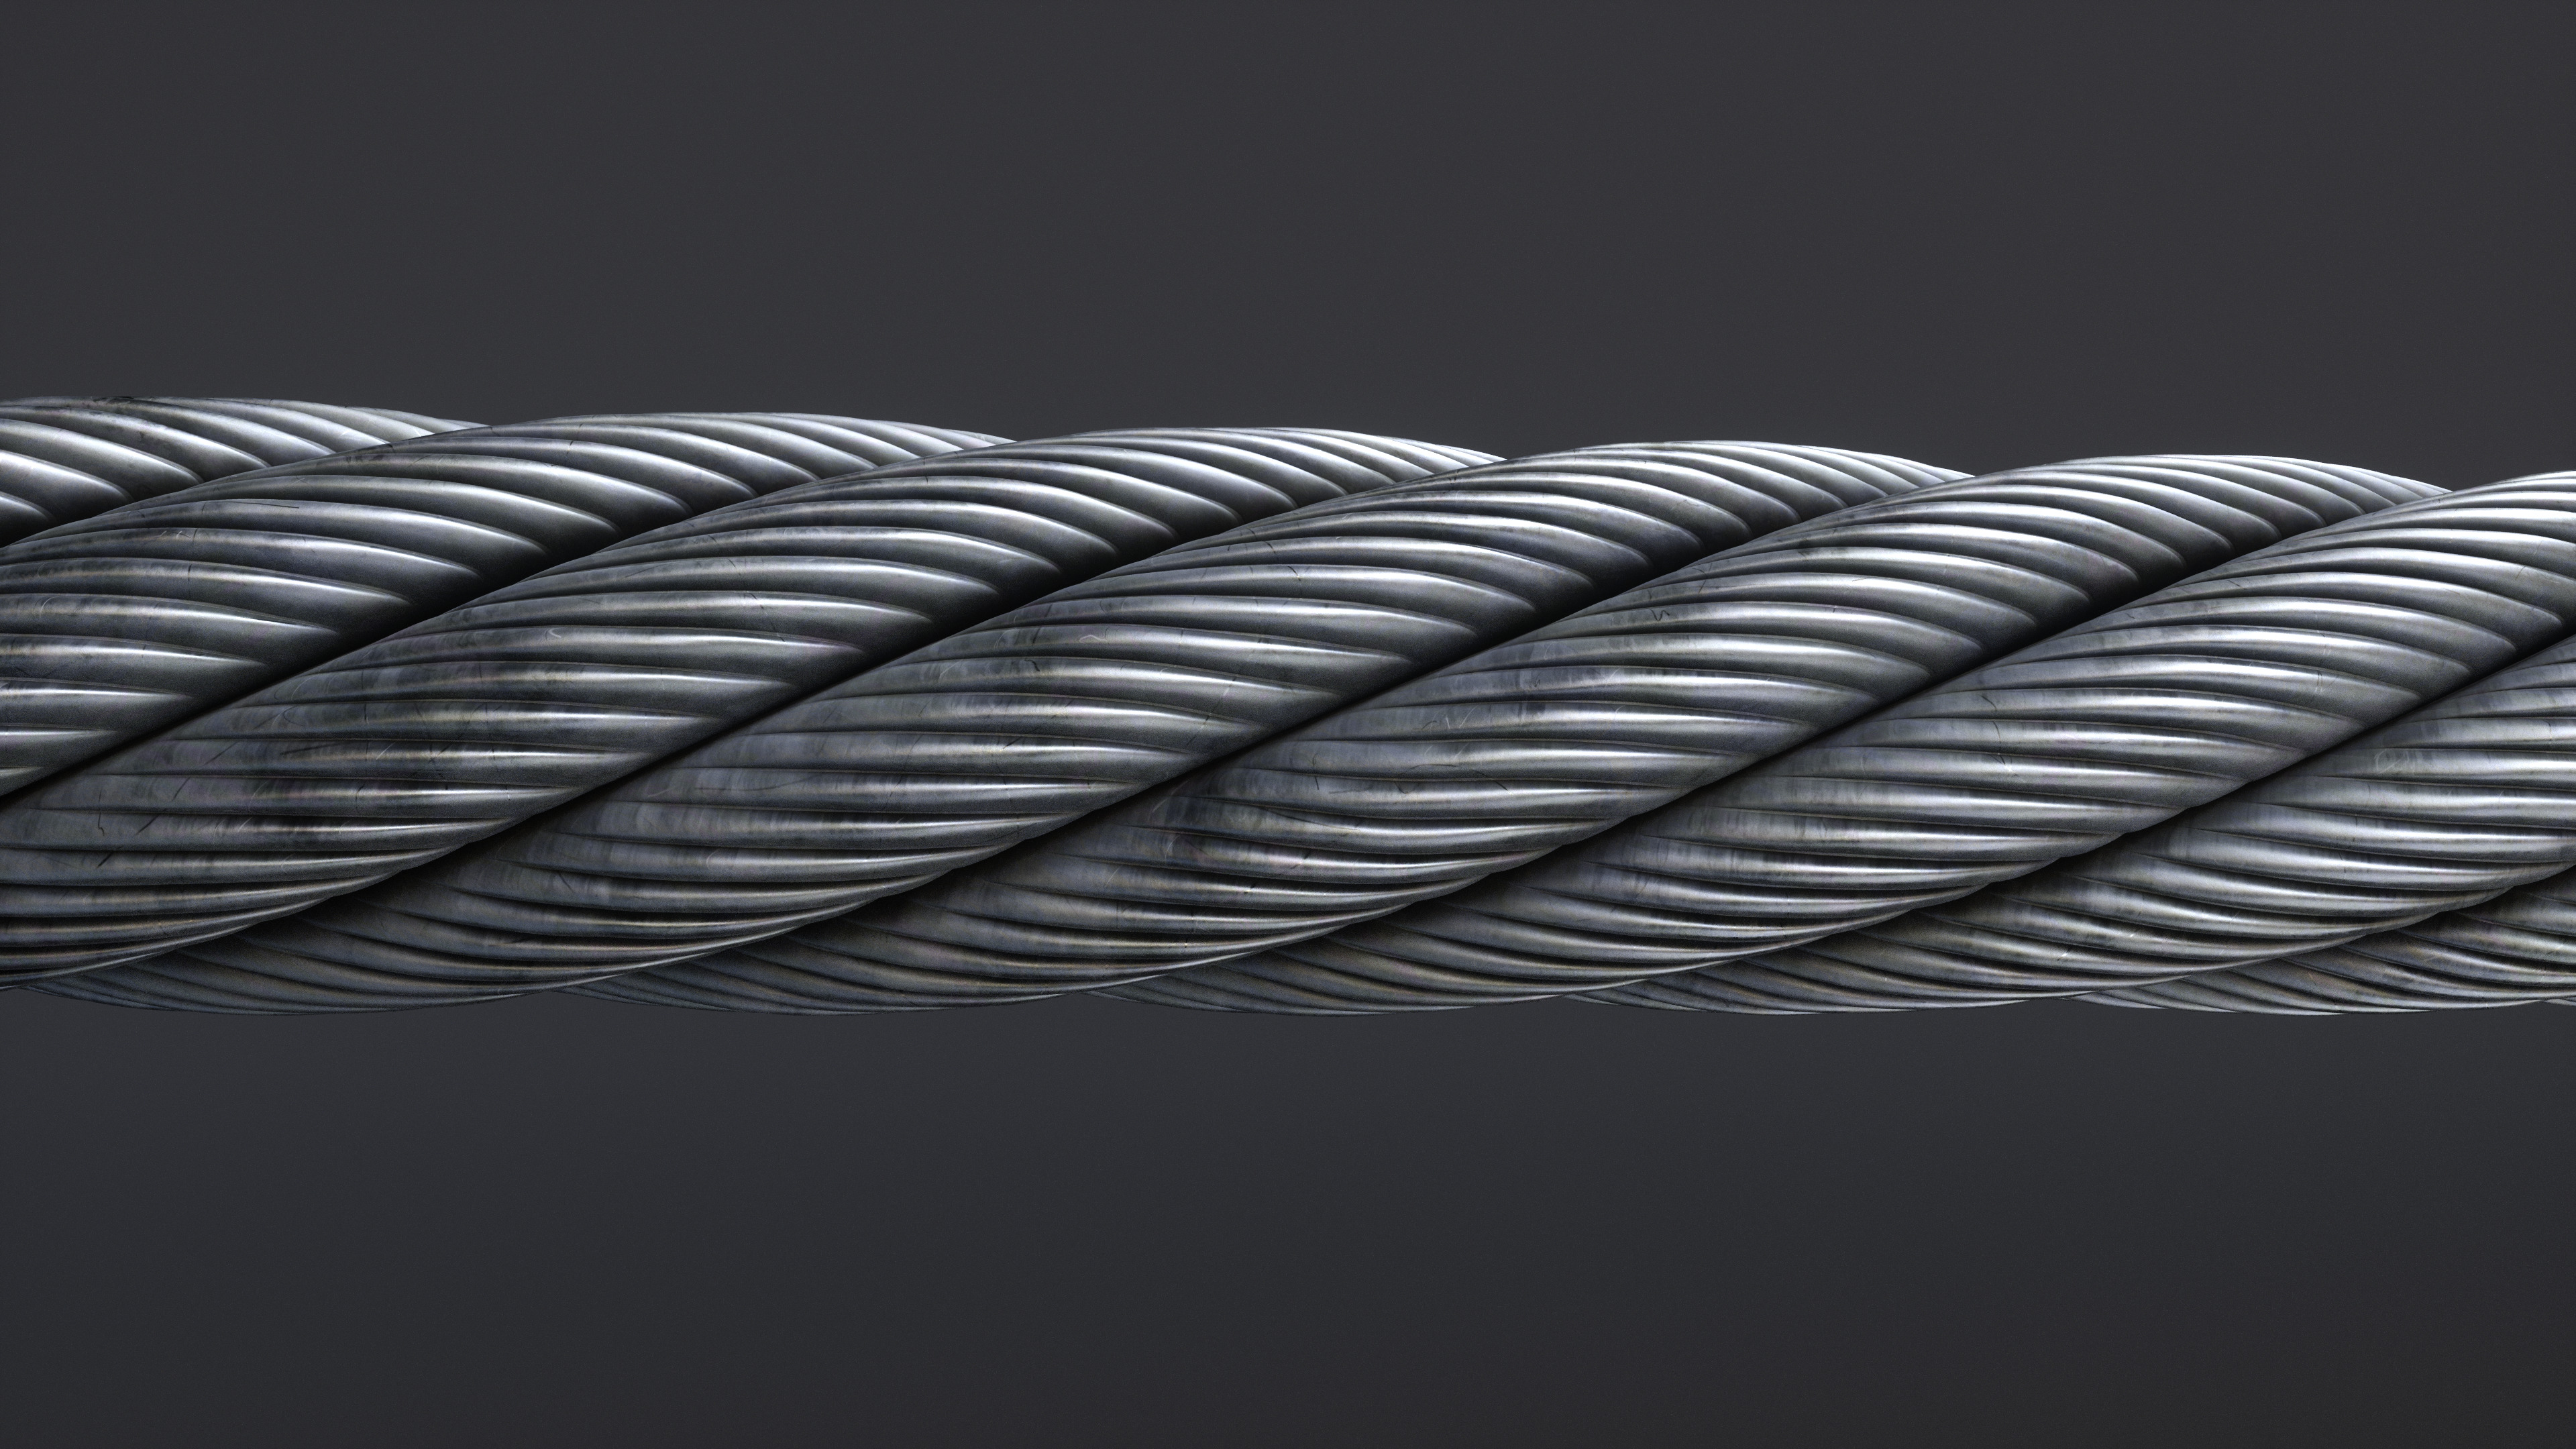 Industrial Steel Cable Pbr0210